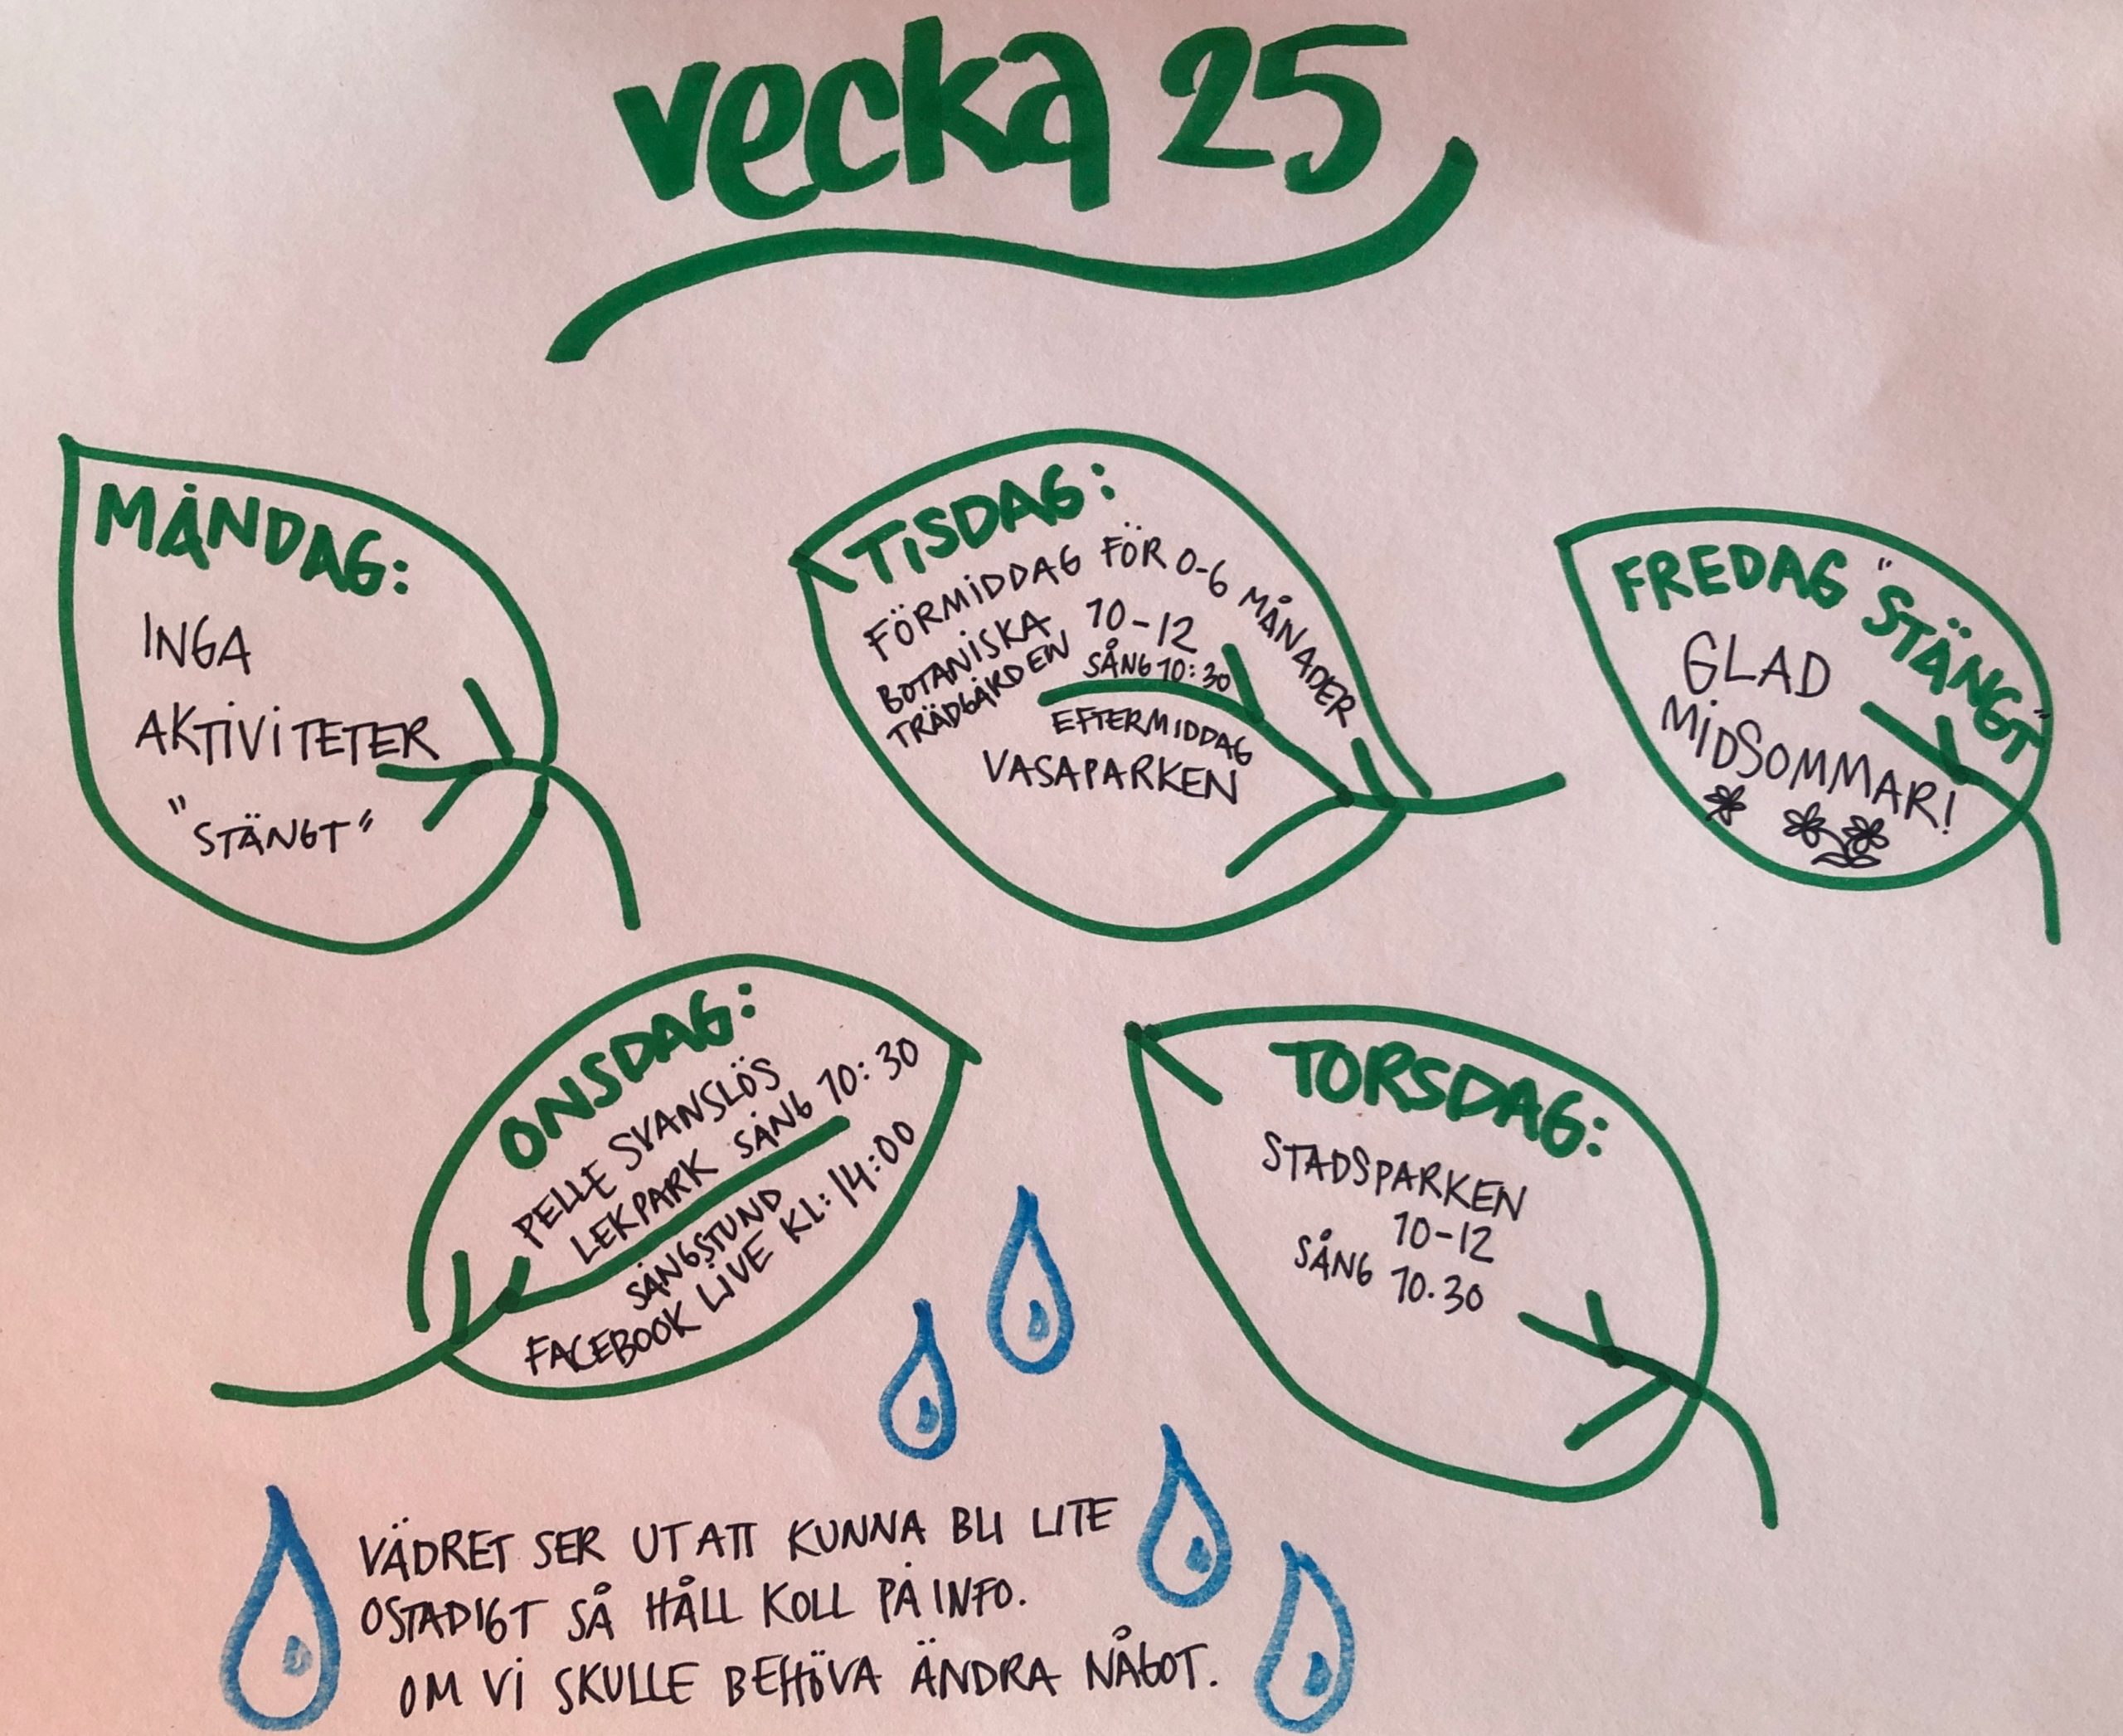 You are currently viewing Vecka 25